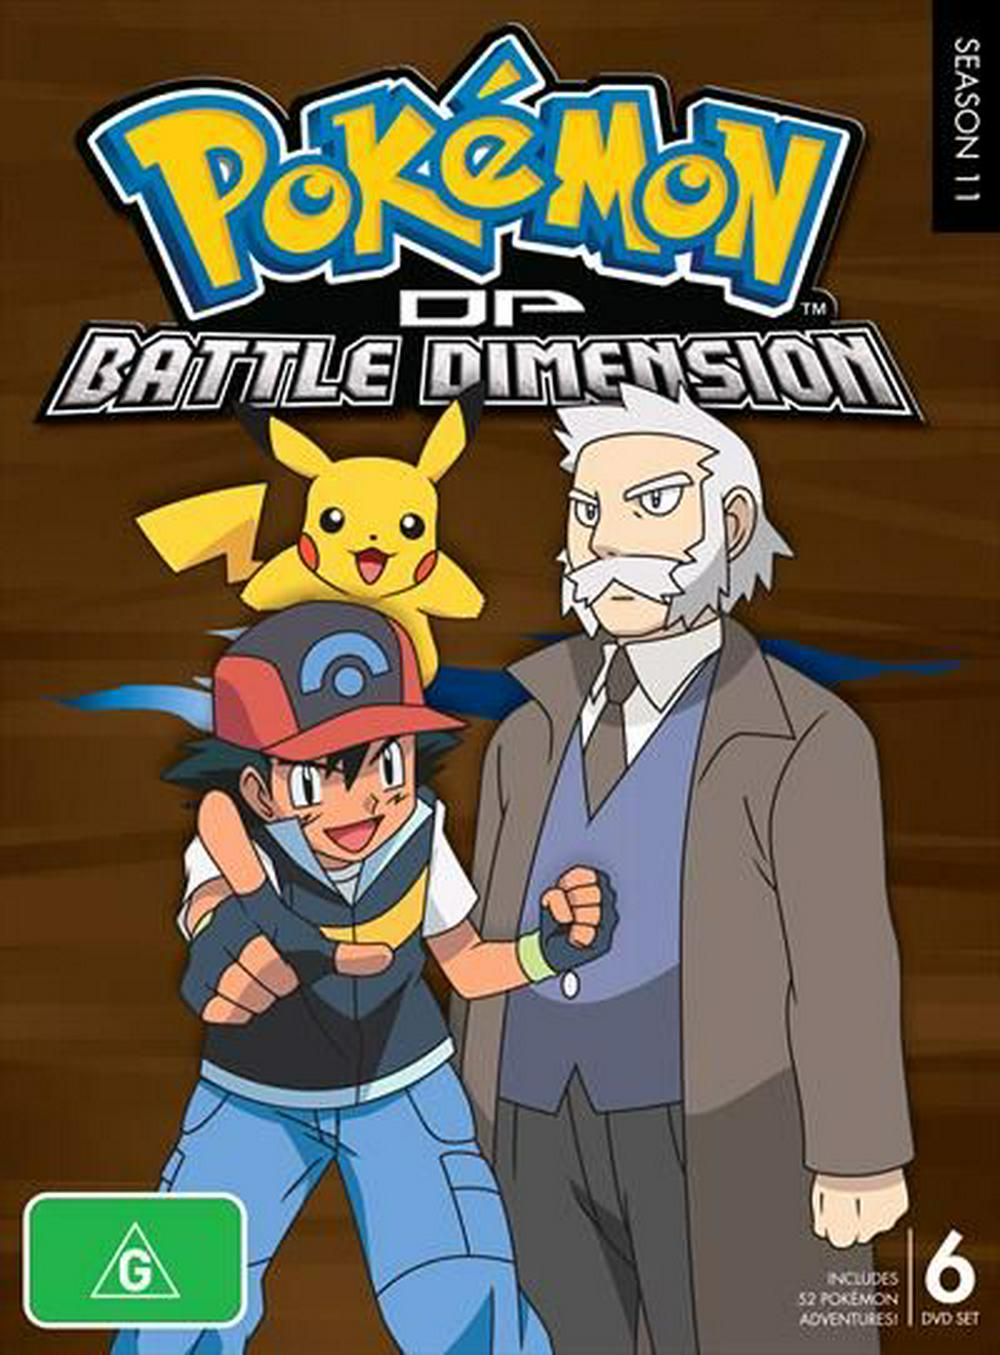 Pokemon: DP Battle Dimension - Season 11 by MHE, ISBN: 9343970002225